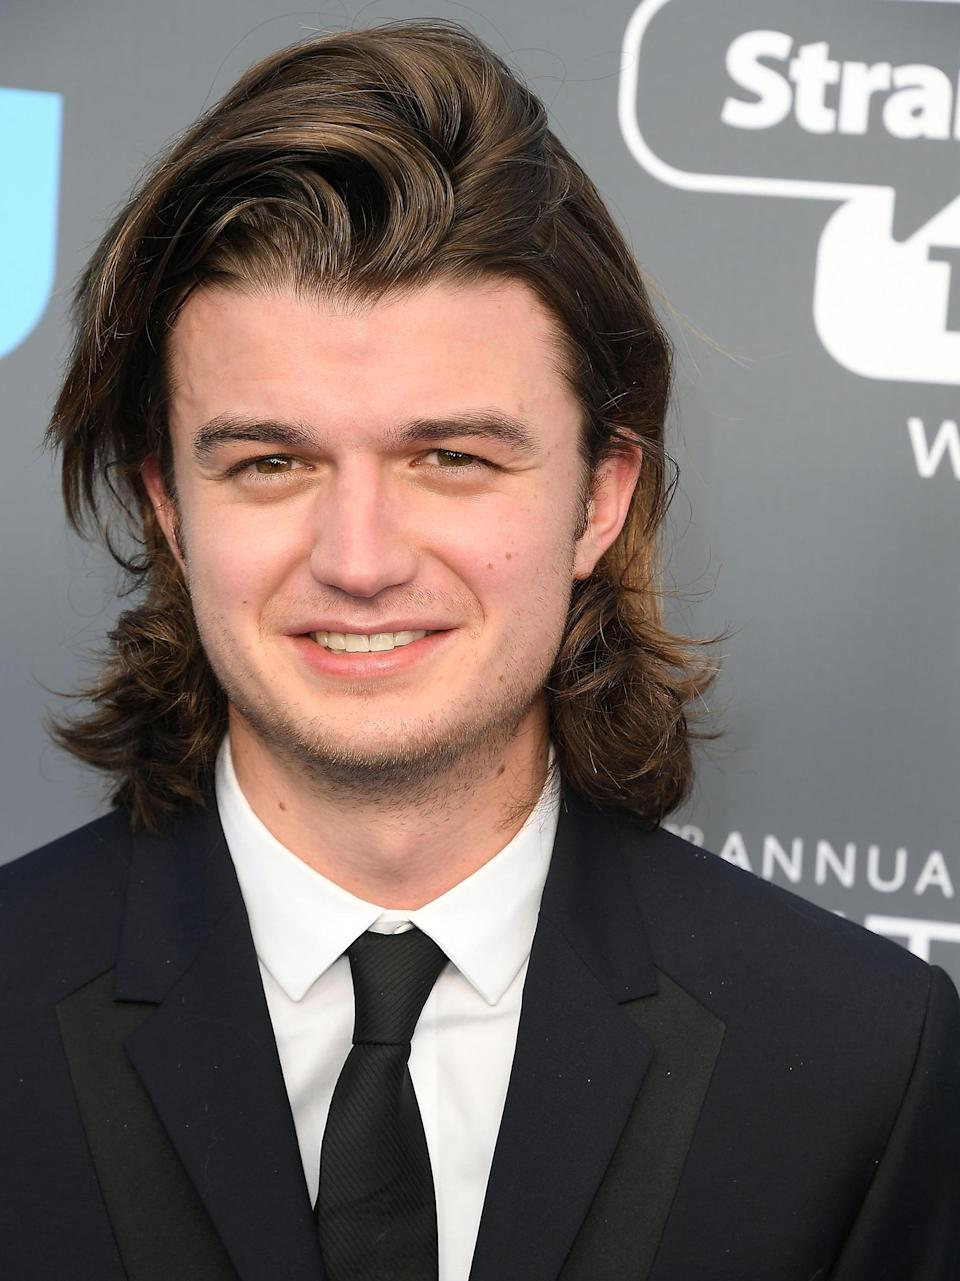 20 Times Stranger Things Joe Keery Looked Really Sexy